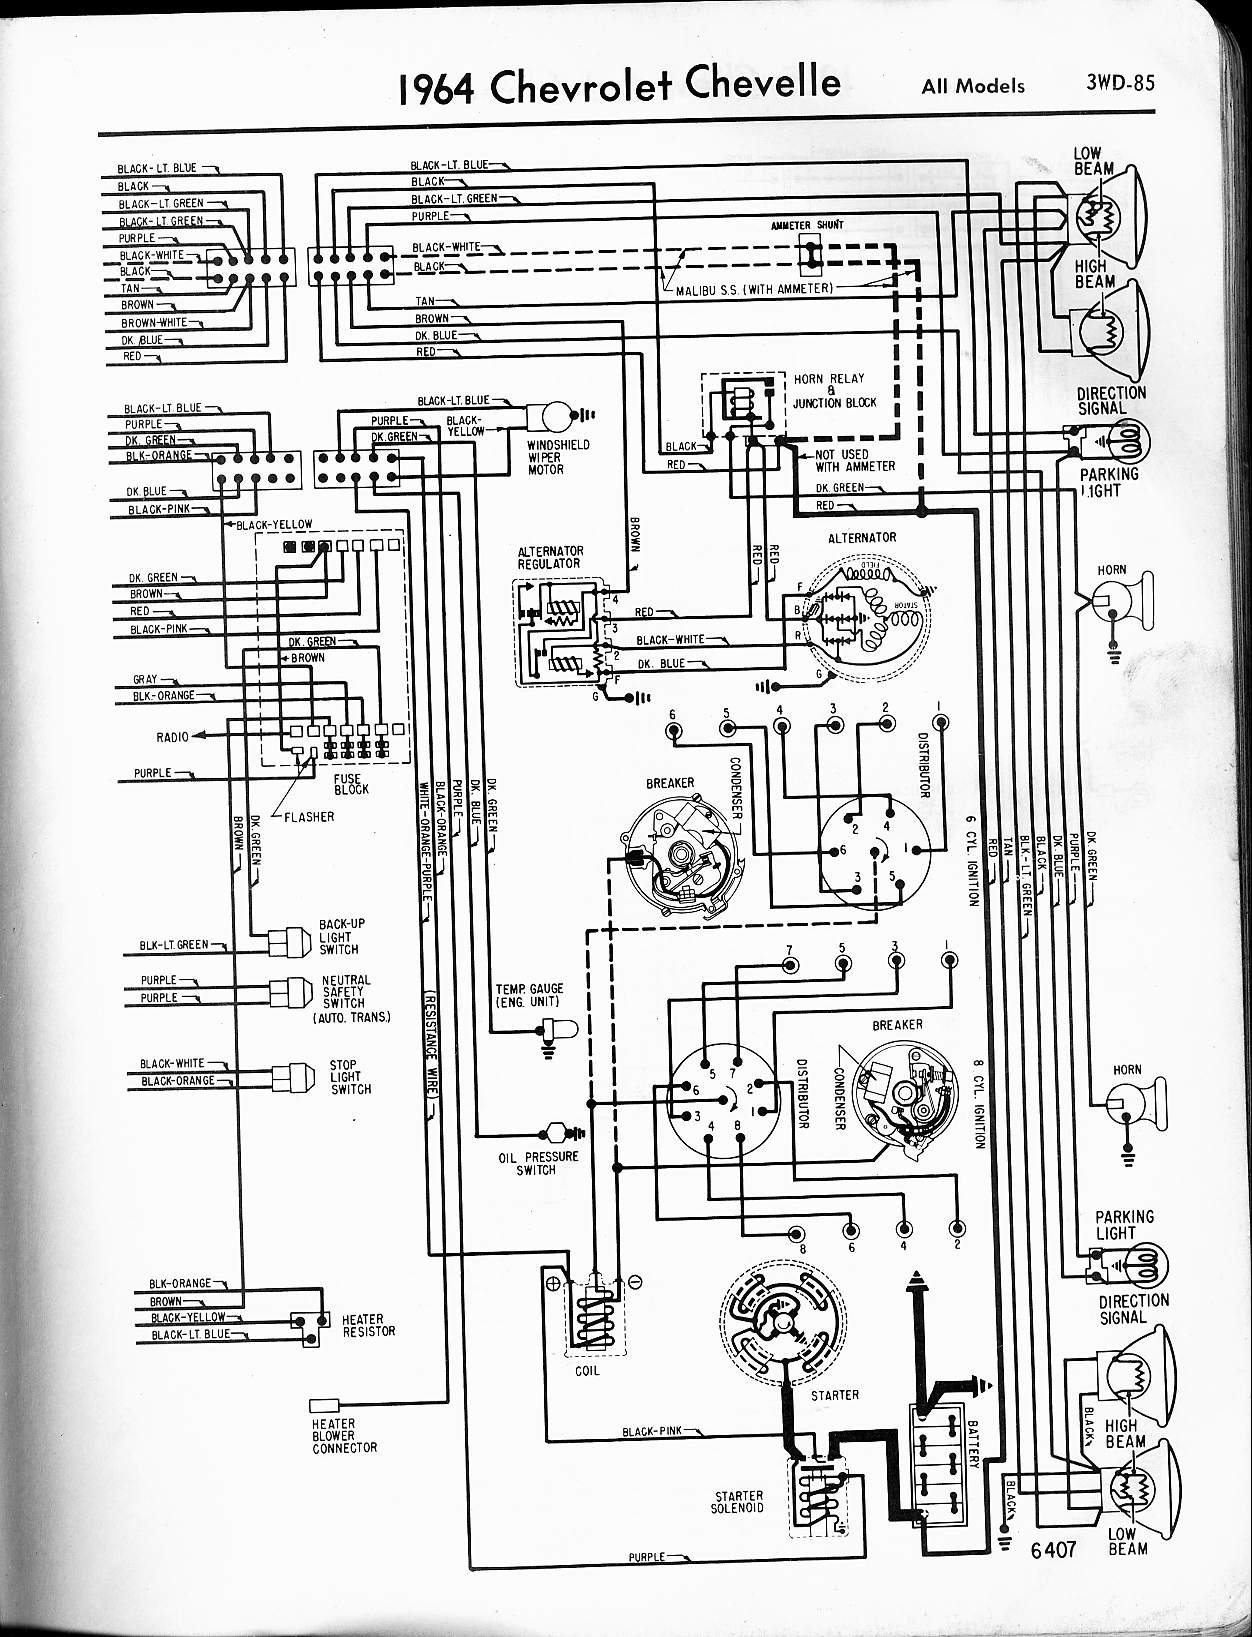 Jeep Cj Factory Tach Wiring Schematic Worksheet And Diagram 1978 Cj7 Harness Chevy Diagrams Rh Wizard Com For Cj5